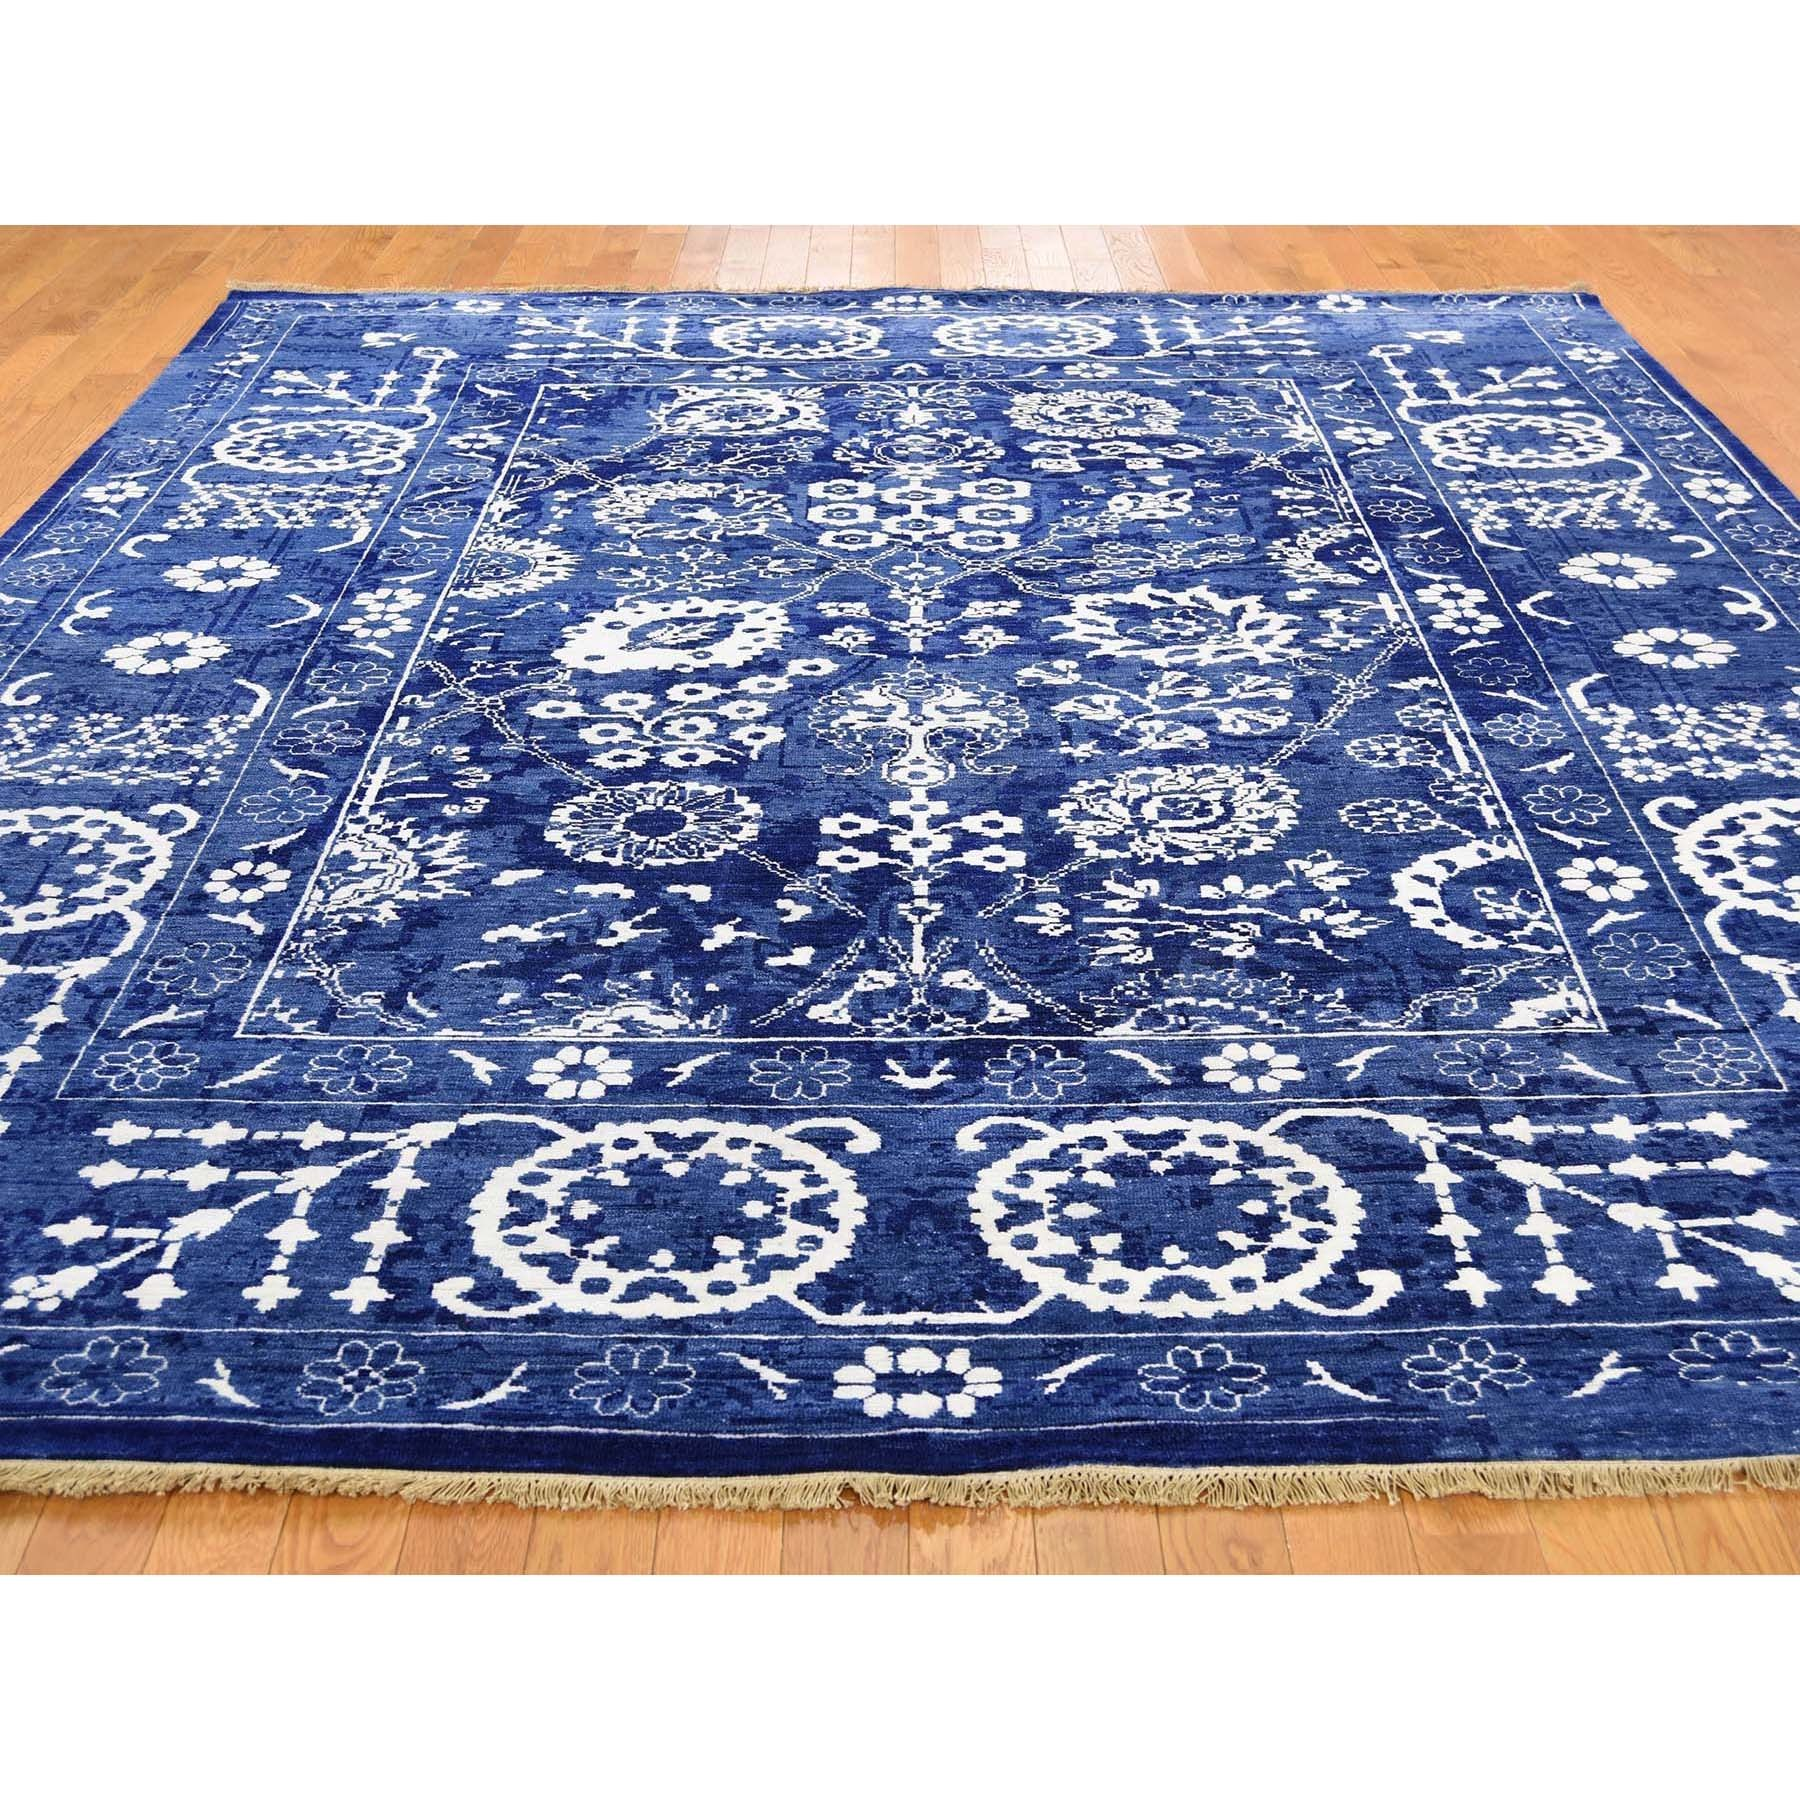 "8'x10'2"" Hand-Knotted Wool and Silk Tone on Tone Tabriz Oriental Rug"